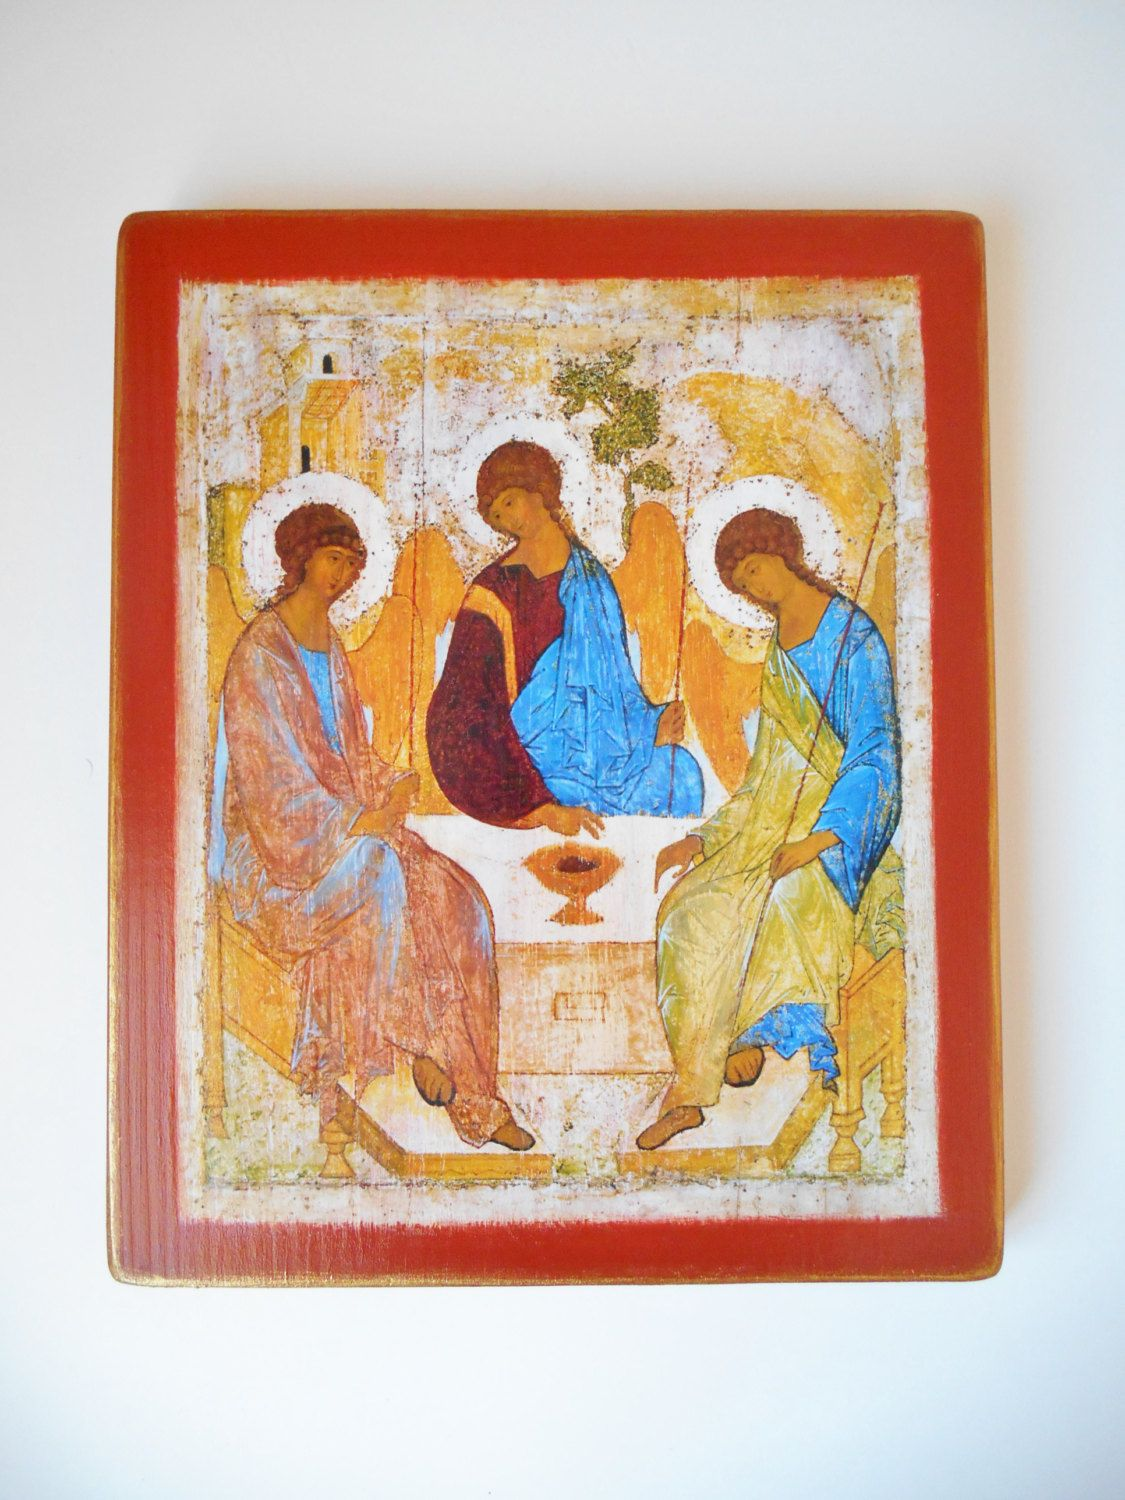 Holy trinity icon 9 x 11 rublev reproduction on wood large icon holy trinity icon 9 x 11 rublev reproduction on wood large icon religious icon sale orthodox negle Image collections